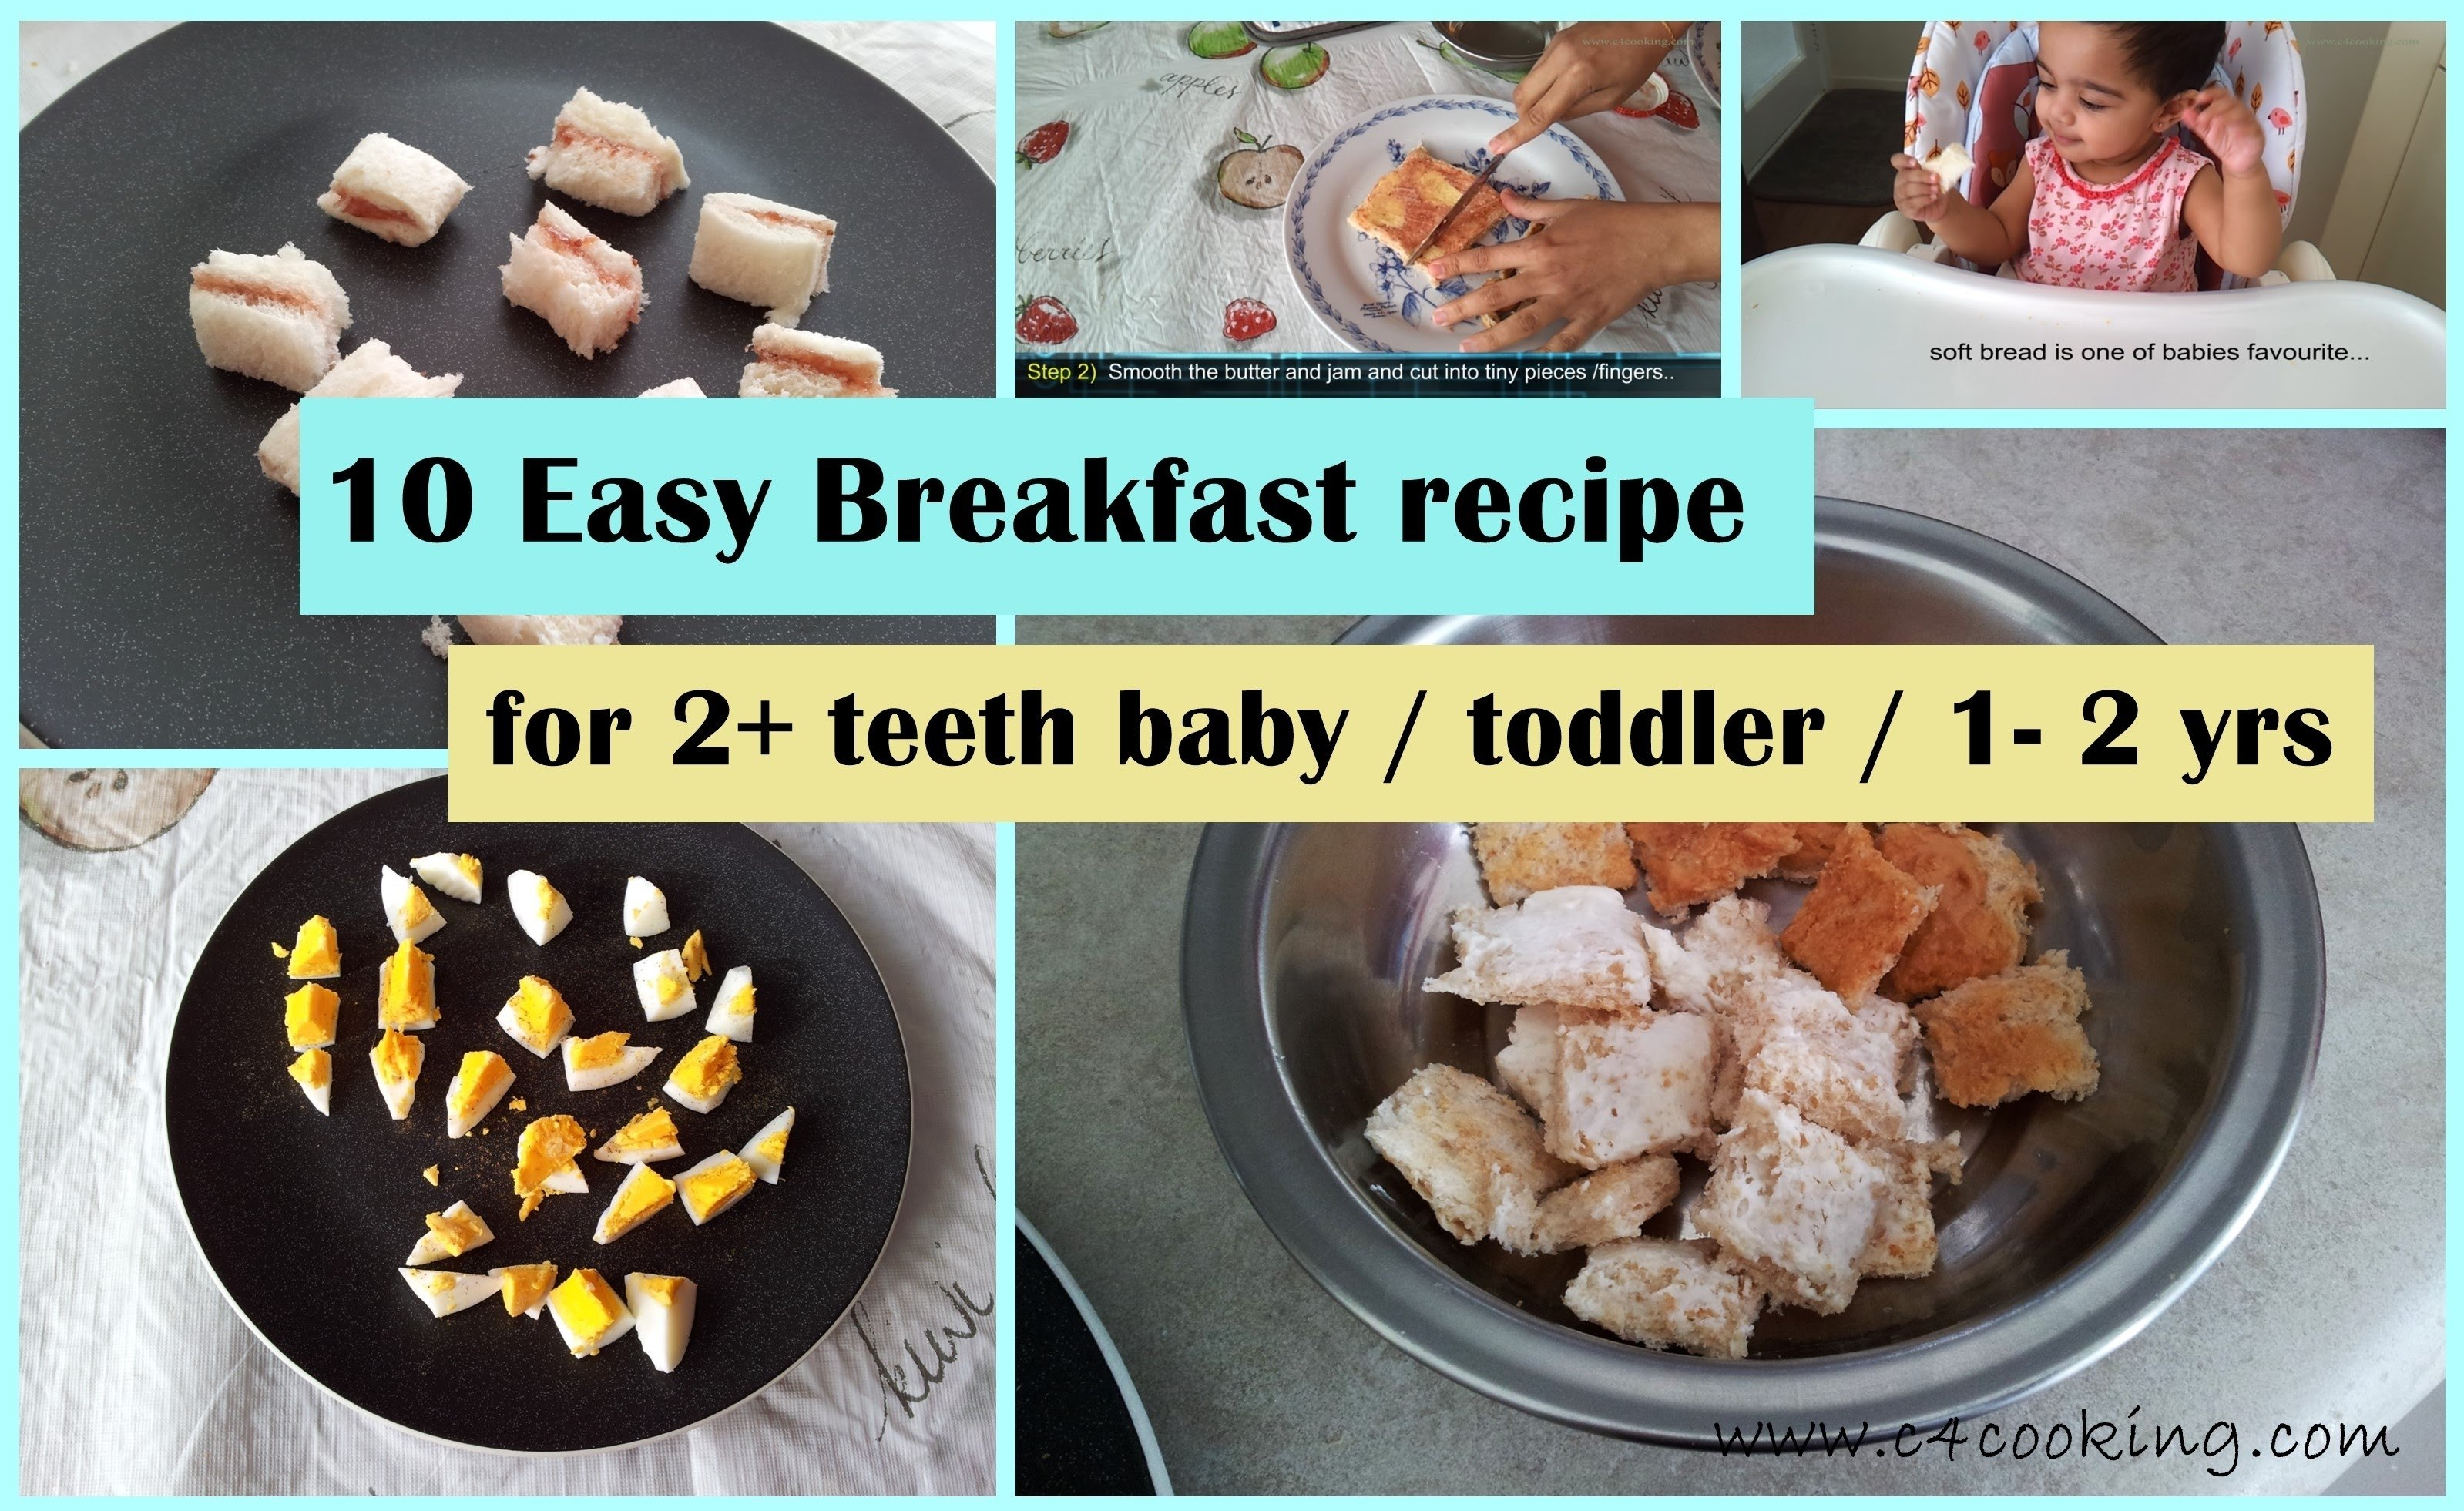 10 Lovely Breakfast Ideas For 1 Year Old 10 easy breakfast ideas for 2 teeth baby toddler 1 2 yrs 3